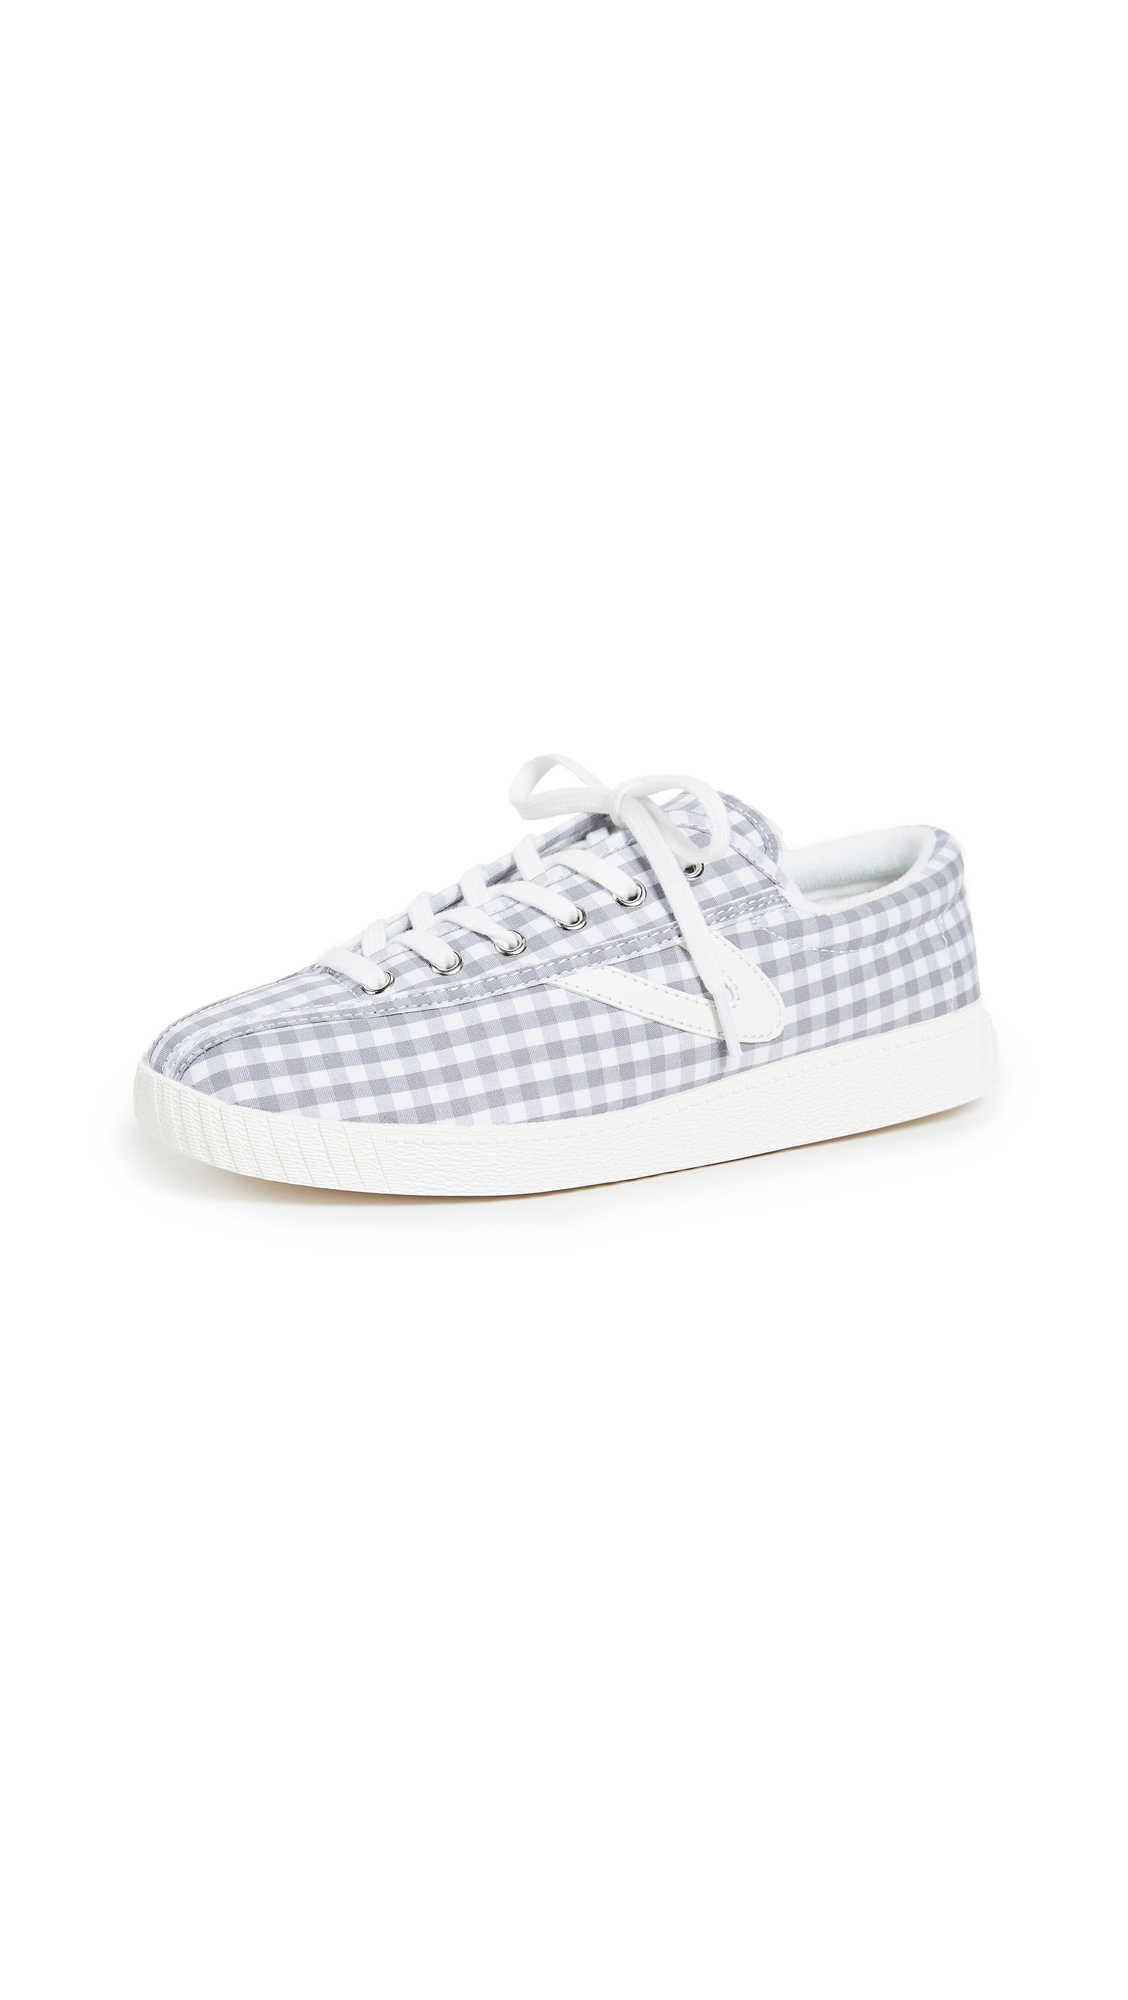 Tretorn Nylite Gingham Sneakers - Grey/White